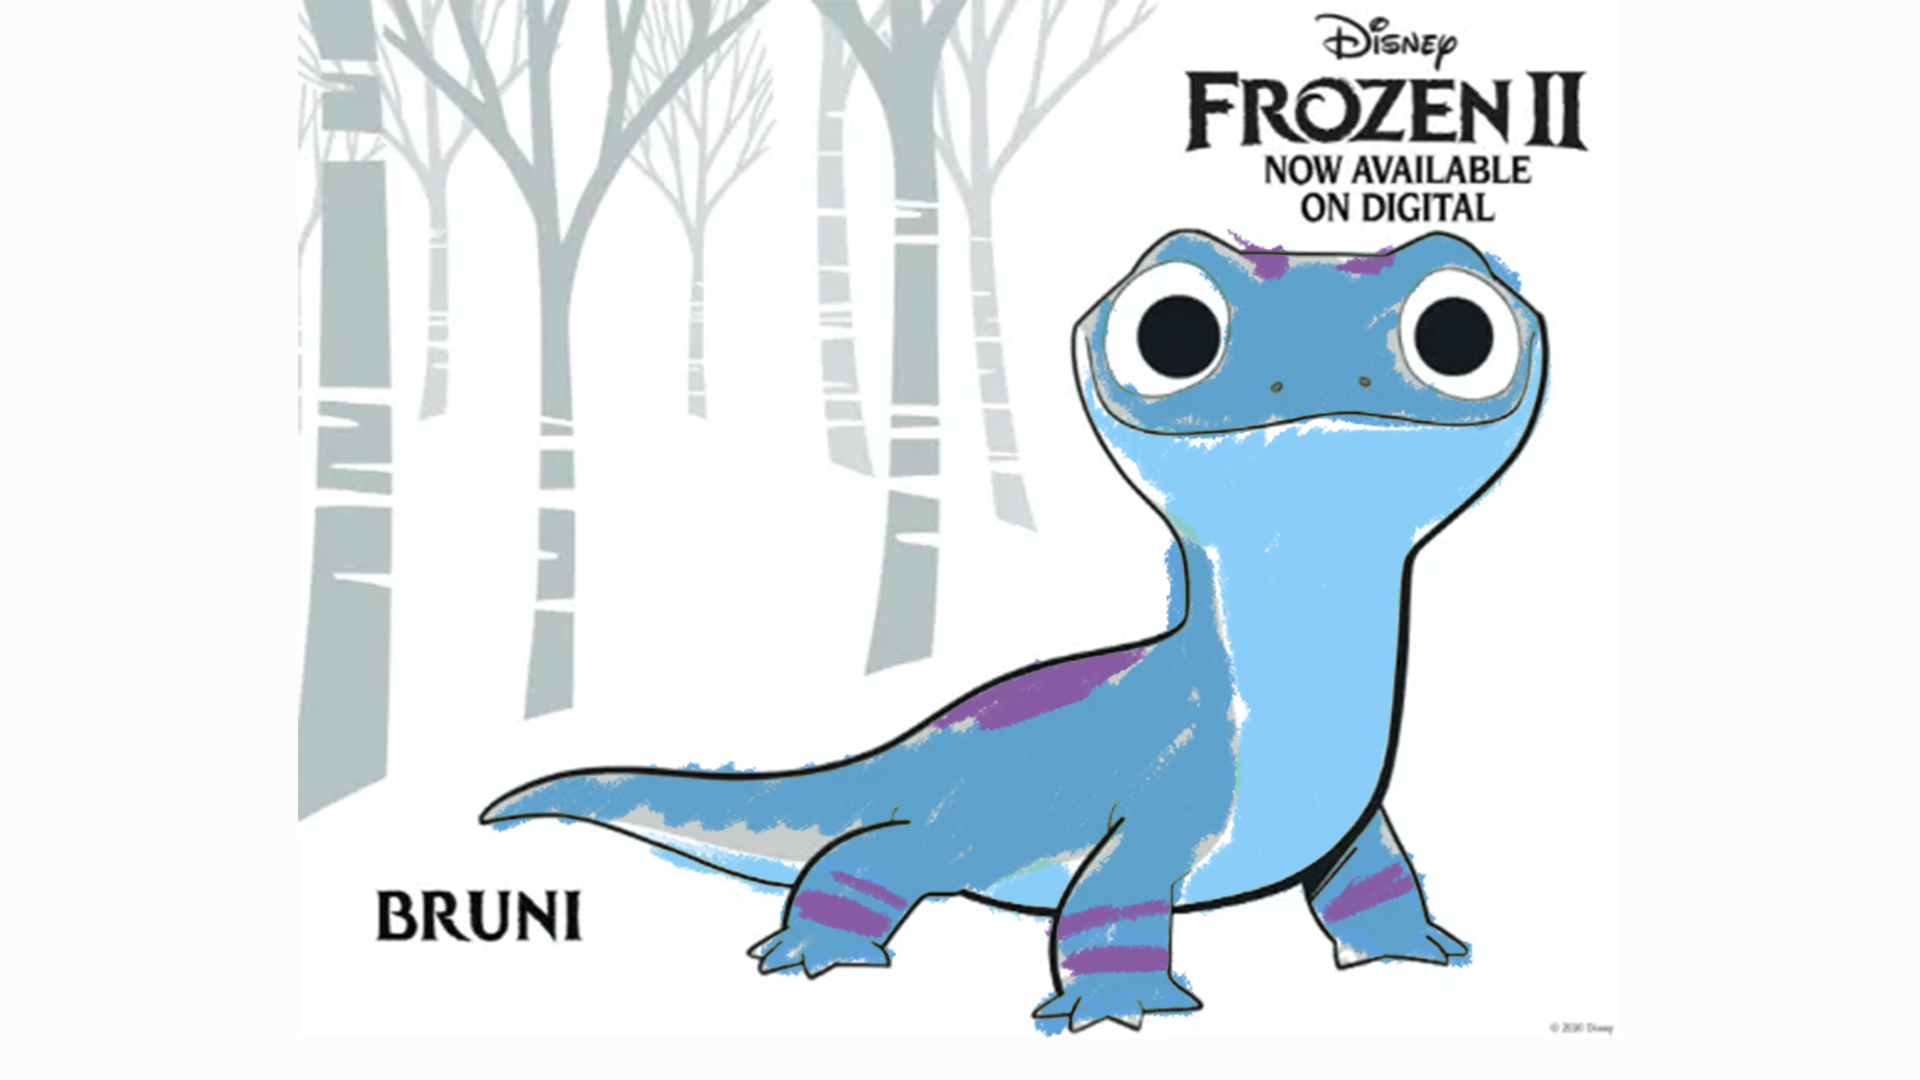 Printable Frozen 2 Coloring Pages Plus Other Frozen Activities at Home!